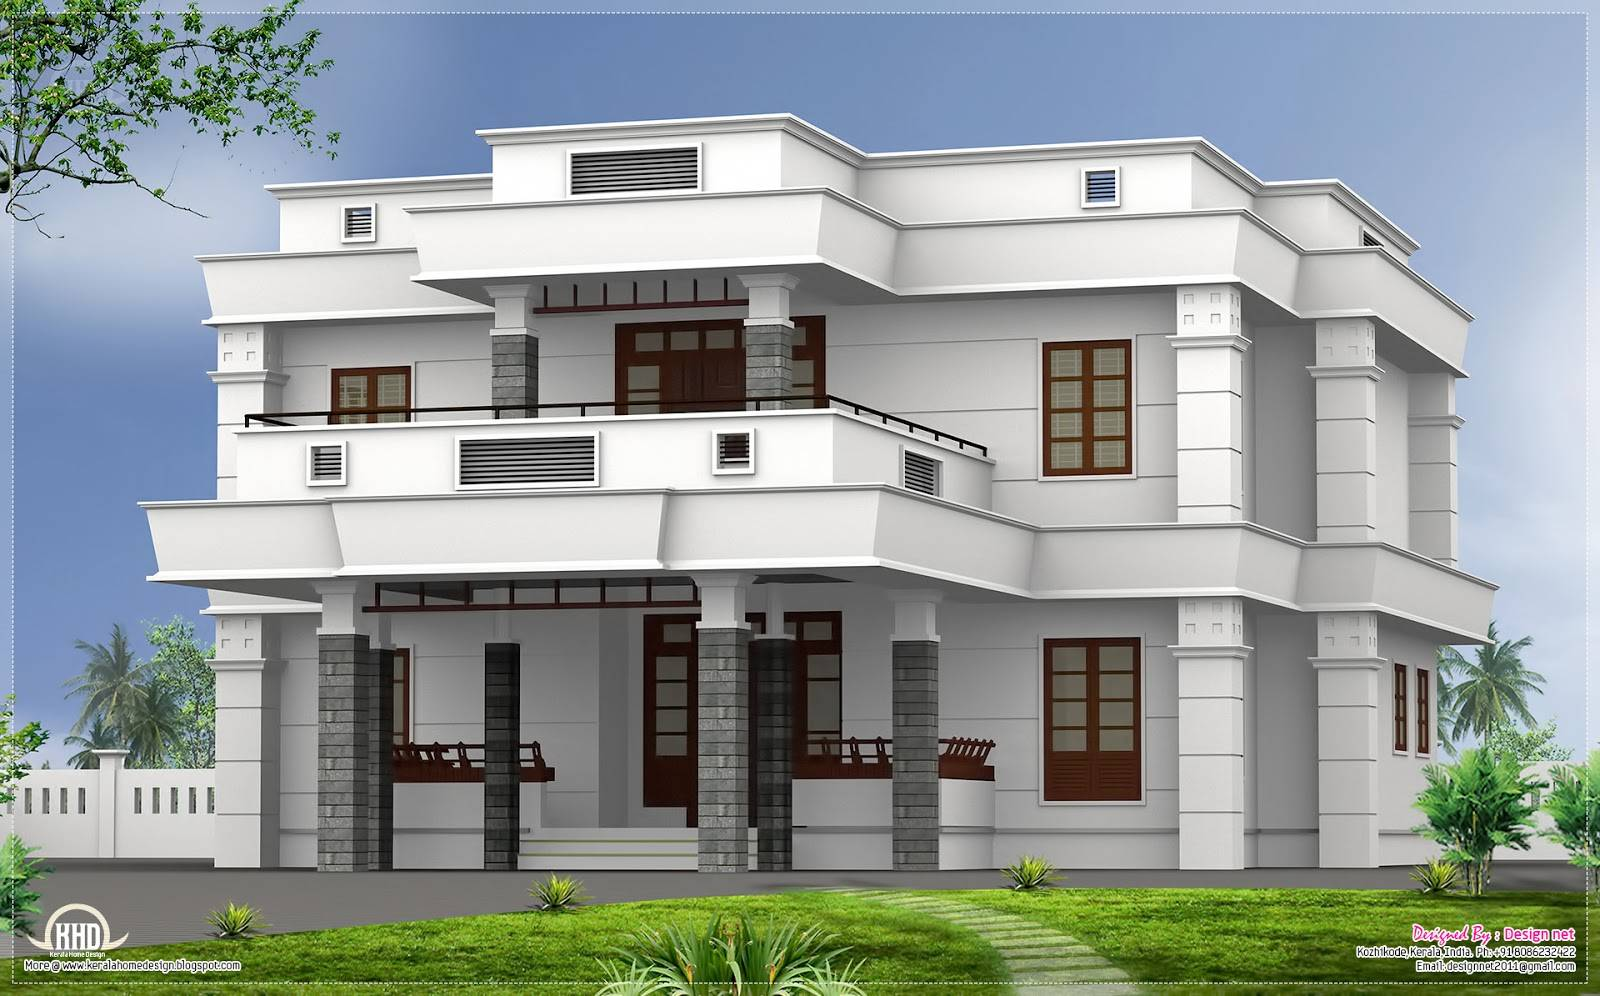 Co friendly houses bhk modern flat oof house design house